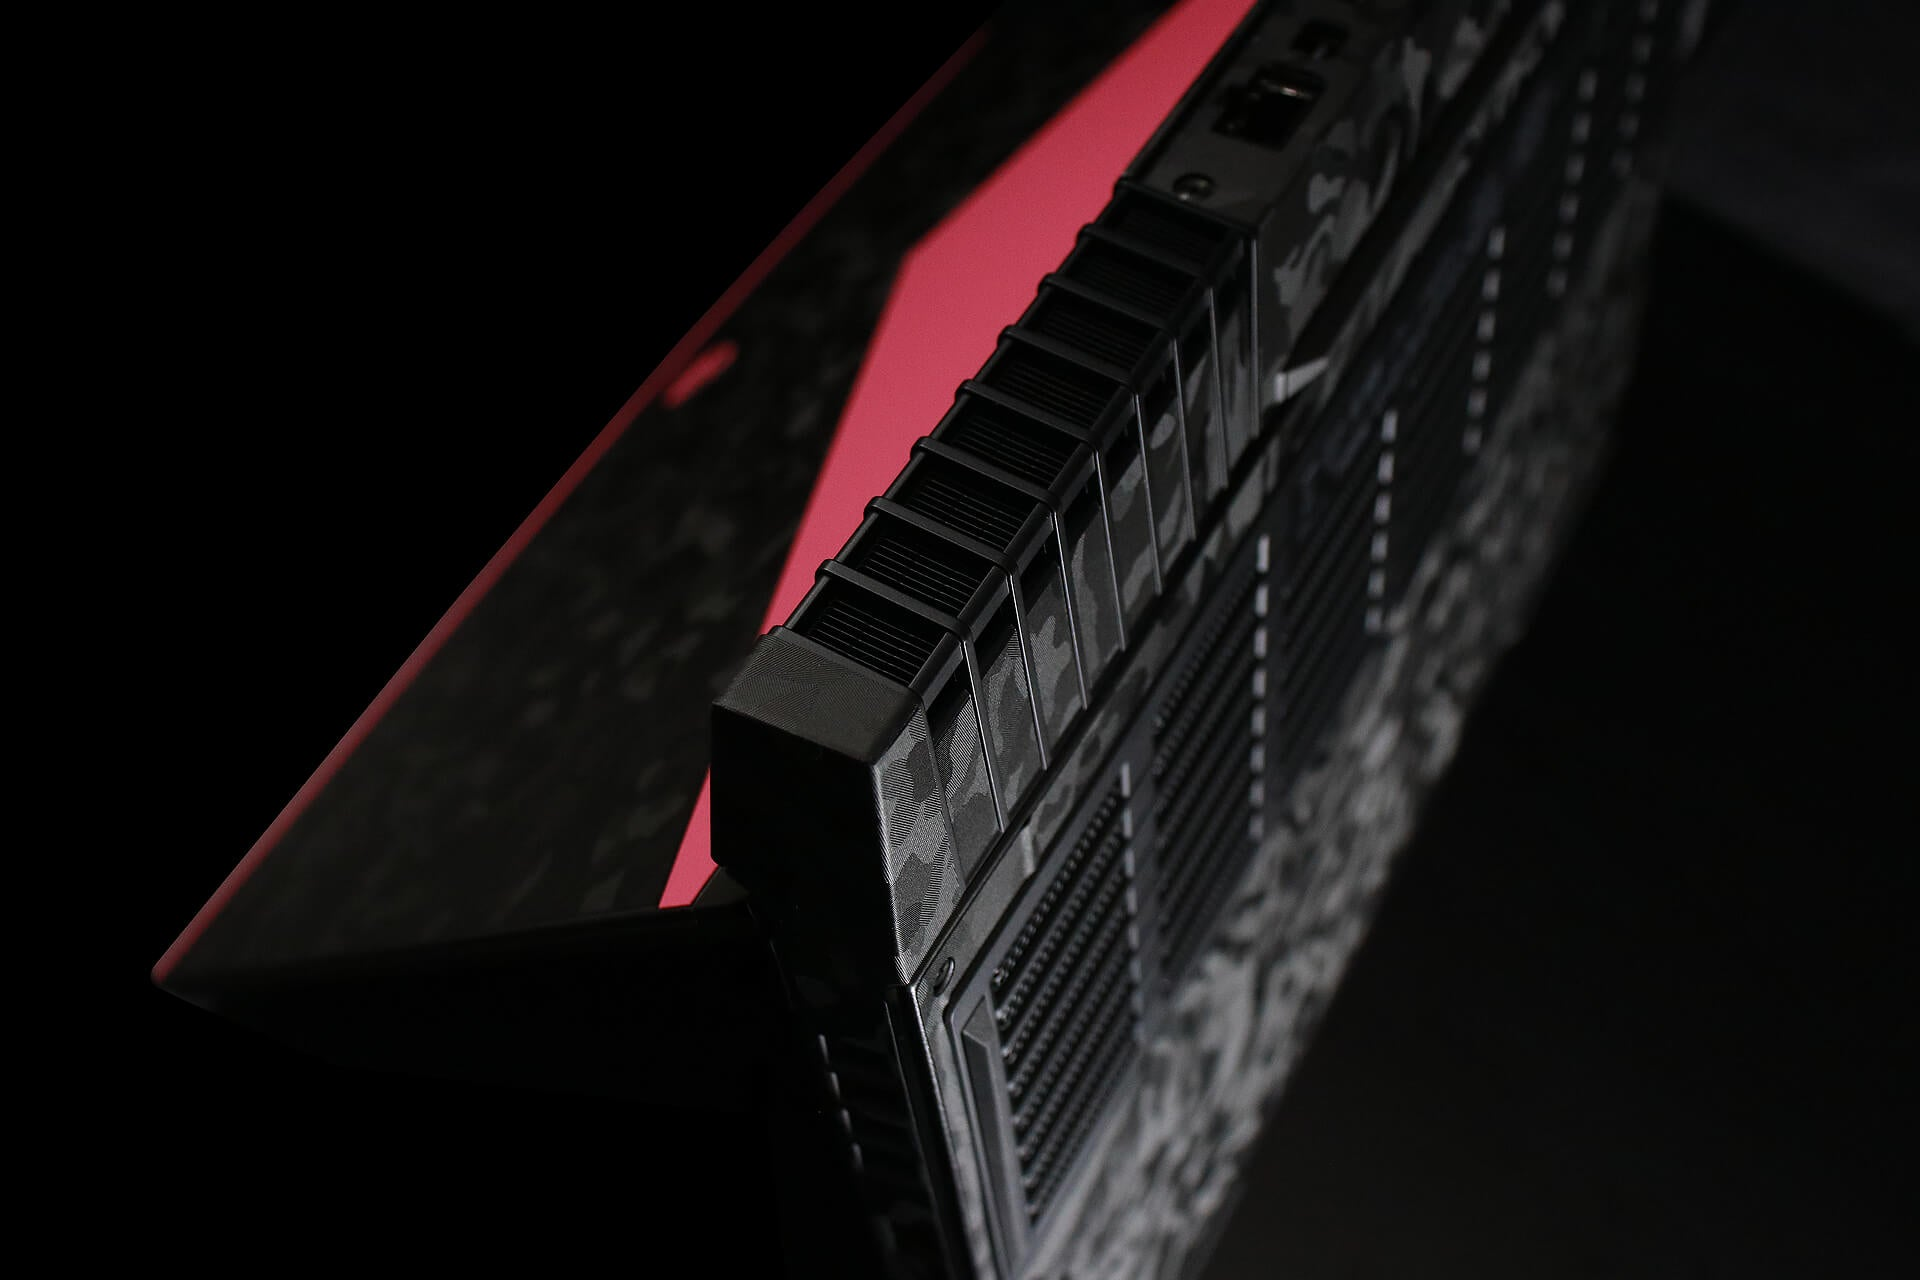 Alienware 15 R4 Black Camo and True Colour Pink Skins